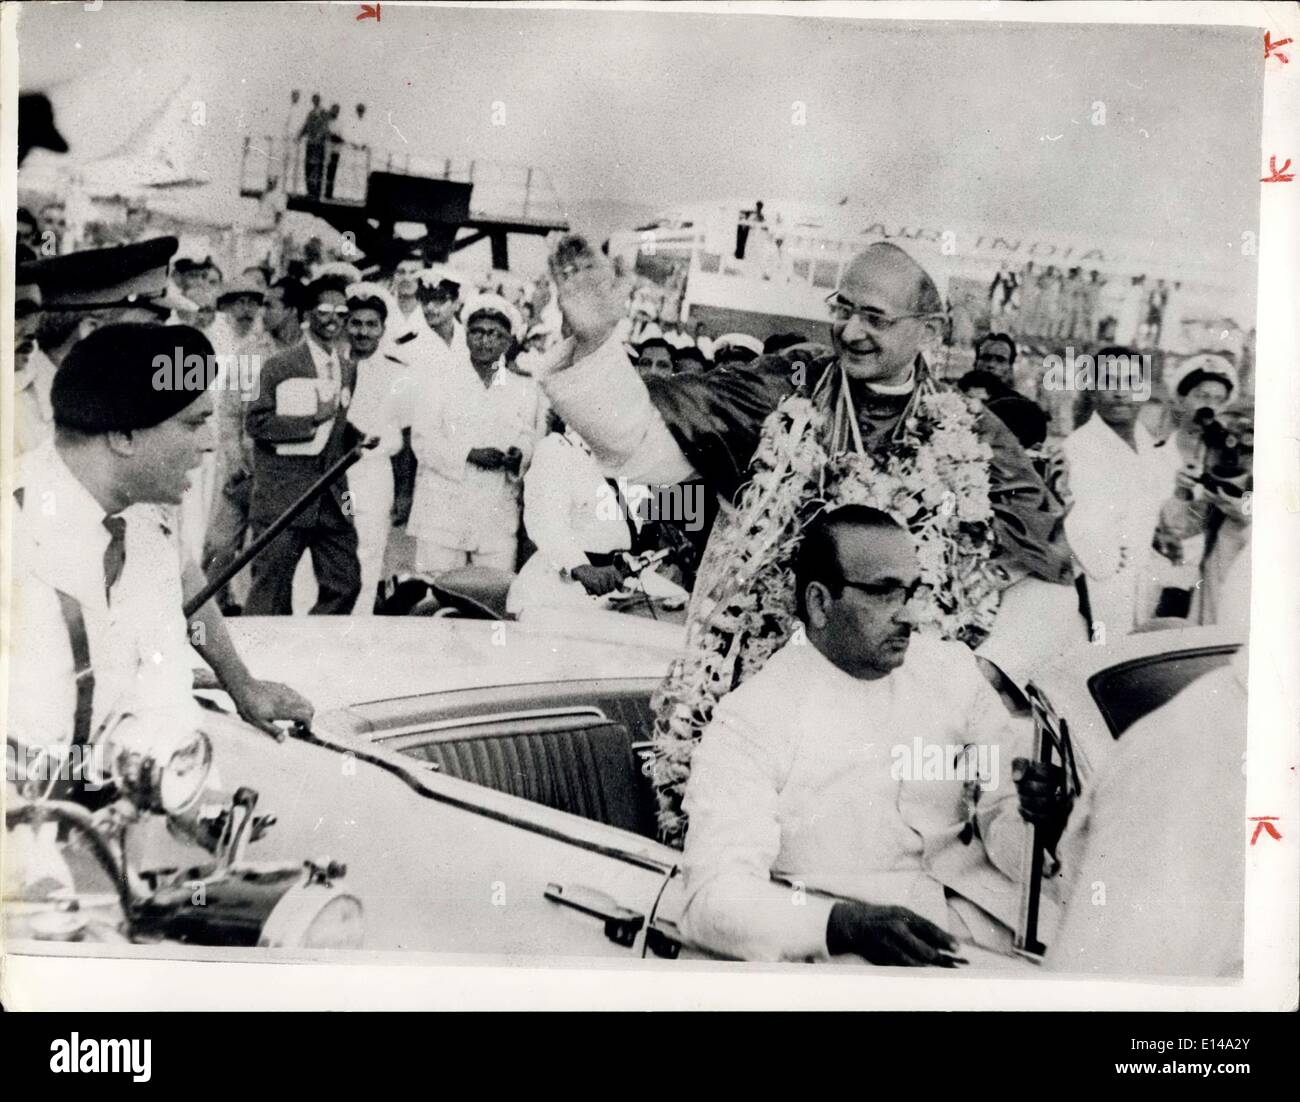 Apr. 17, 2012 - Pope Paul In India: Upon his arrival at Bowley Airport Pope Paul VI acknowledges the greetings from the great crowds wish paclued the airport. - Stock Image